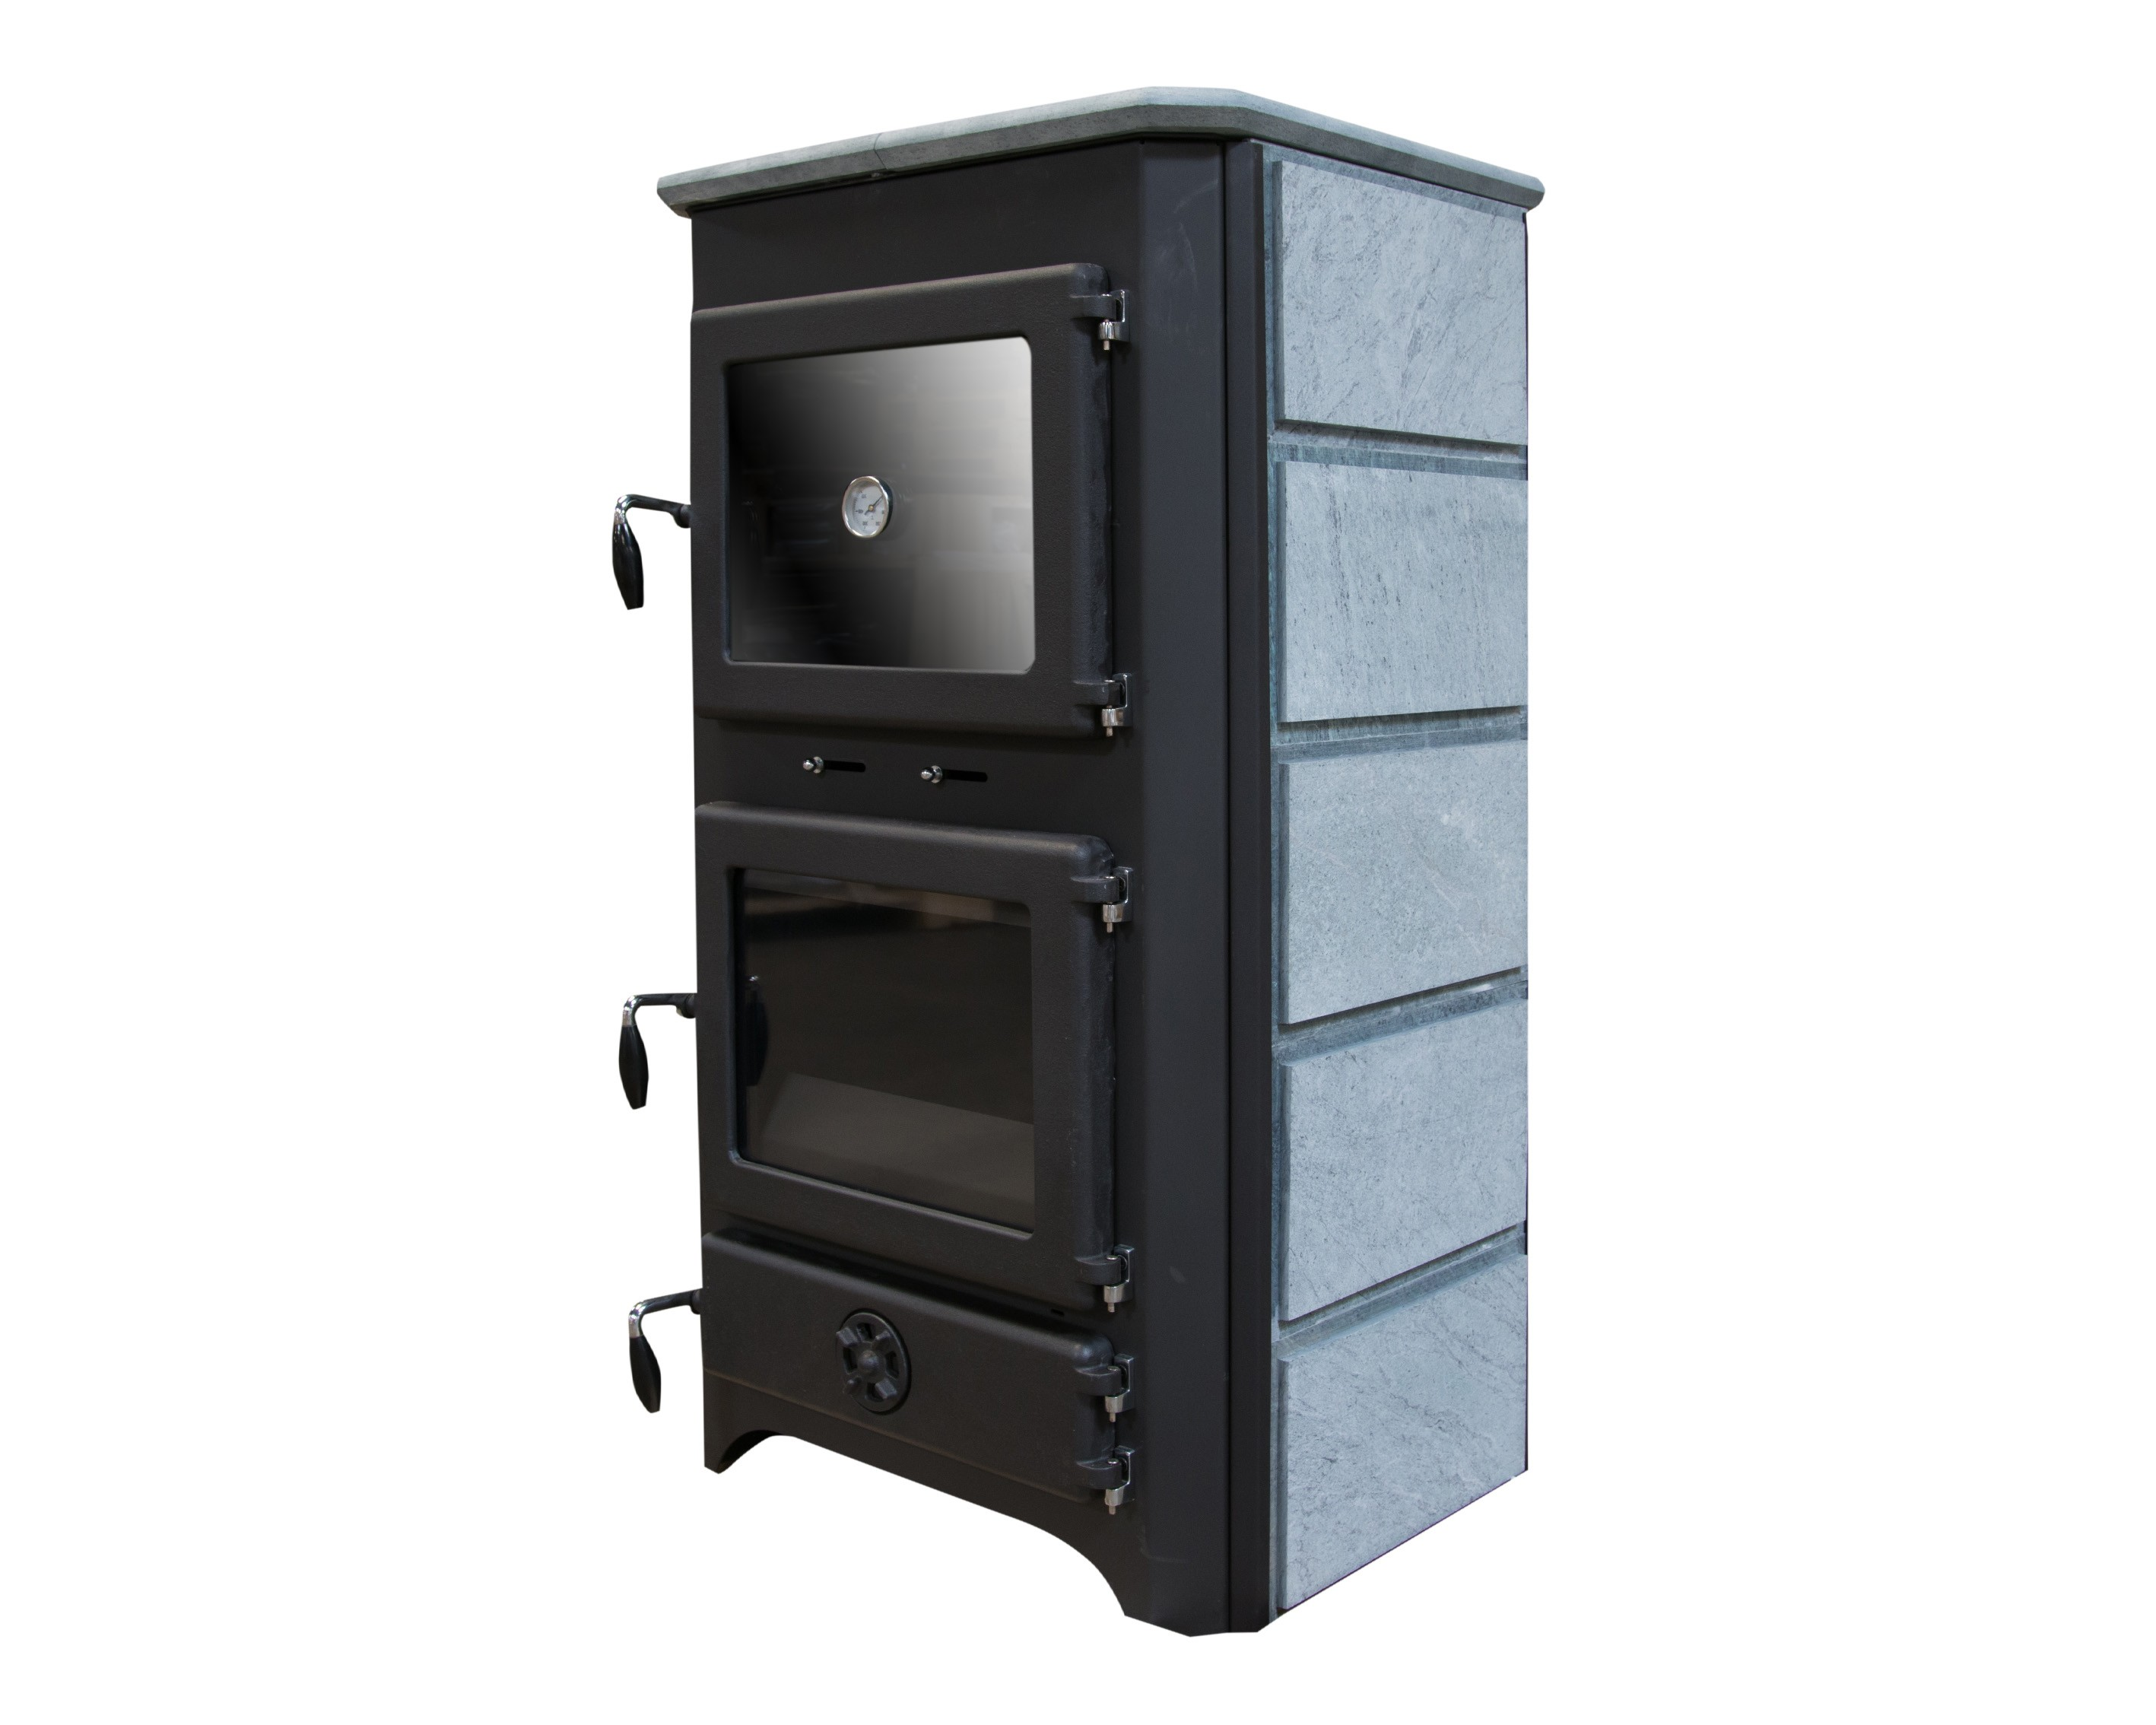 prix poele a bois 24 kw. Black Bedroom Furniture Sets. Home Design Ideas